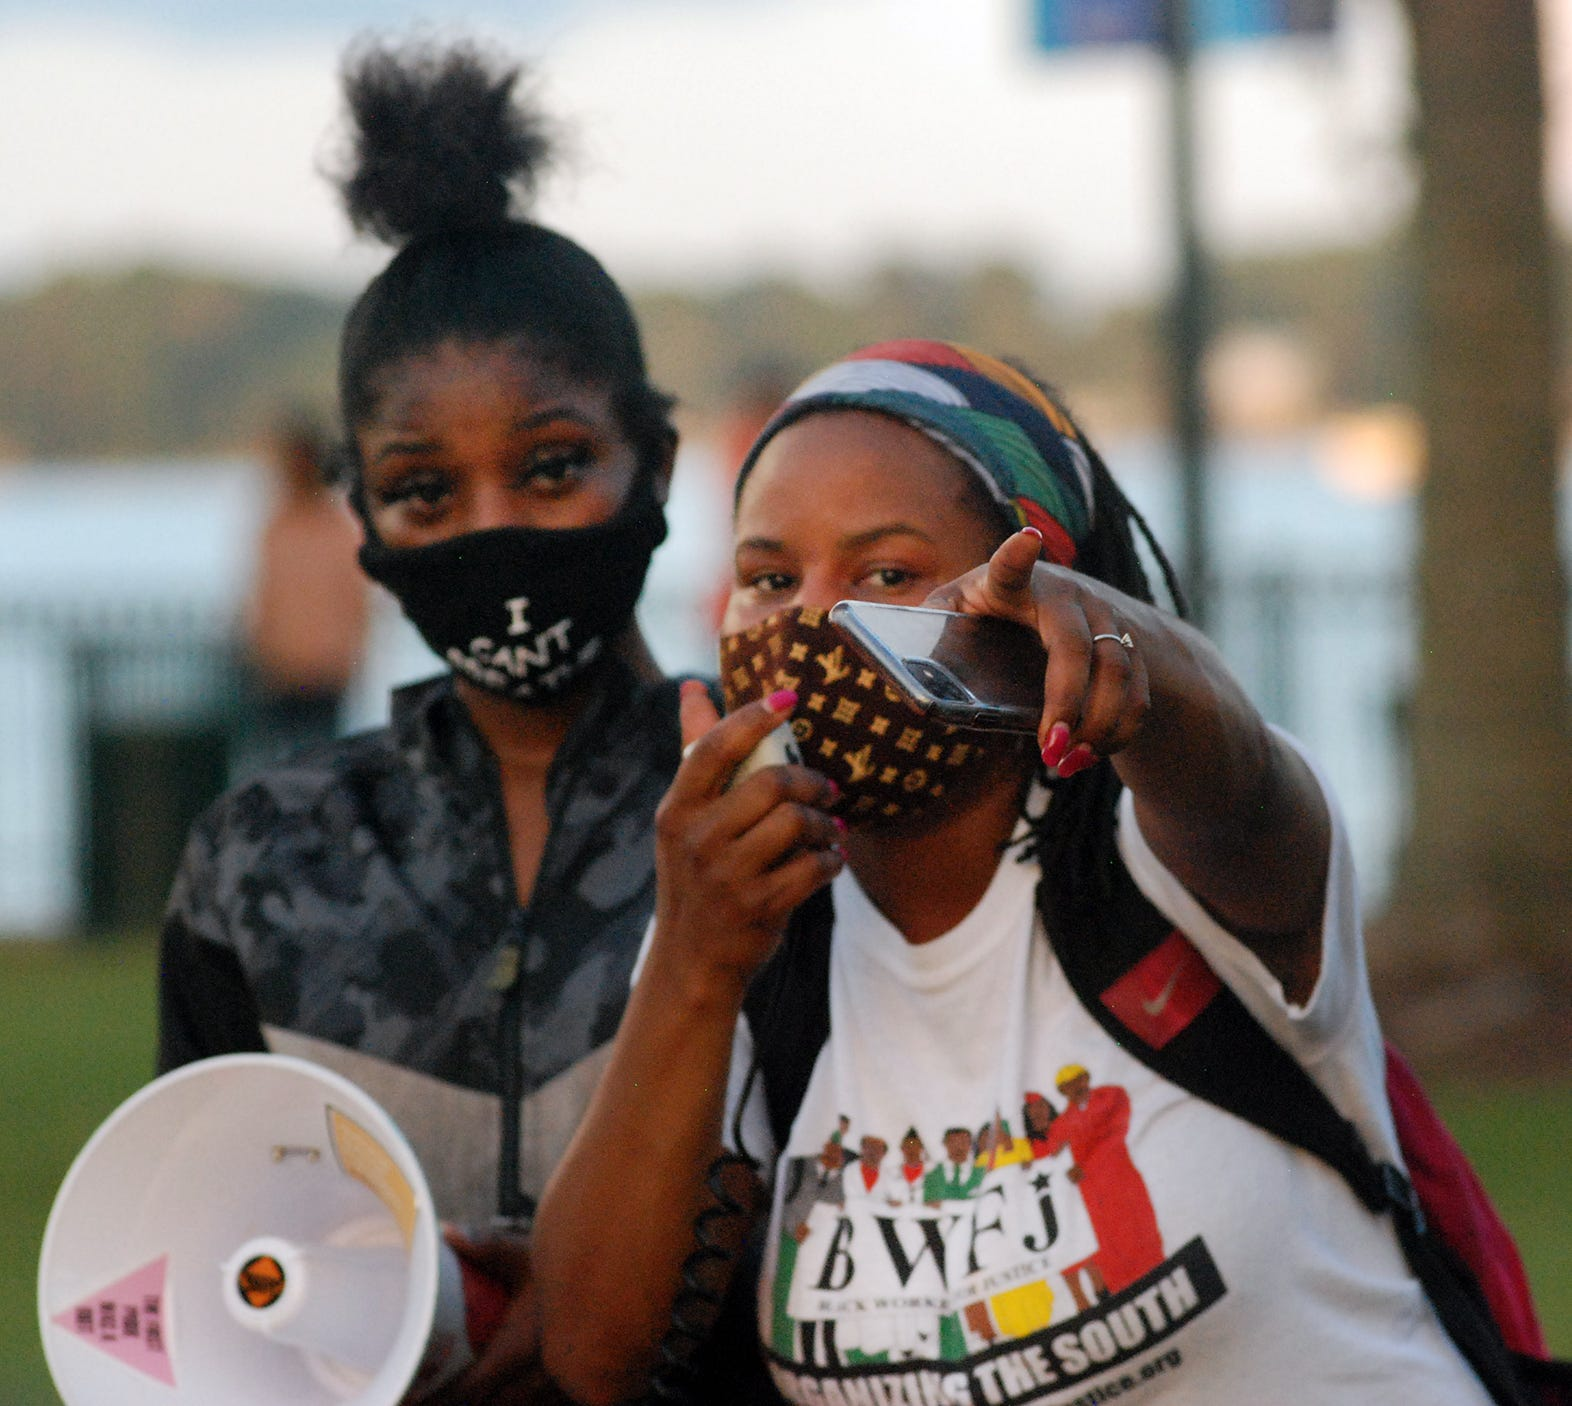 Antoinette Boskey-Chadwick speaks during a Black Lives Matter rally in New Bern.